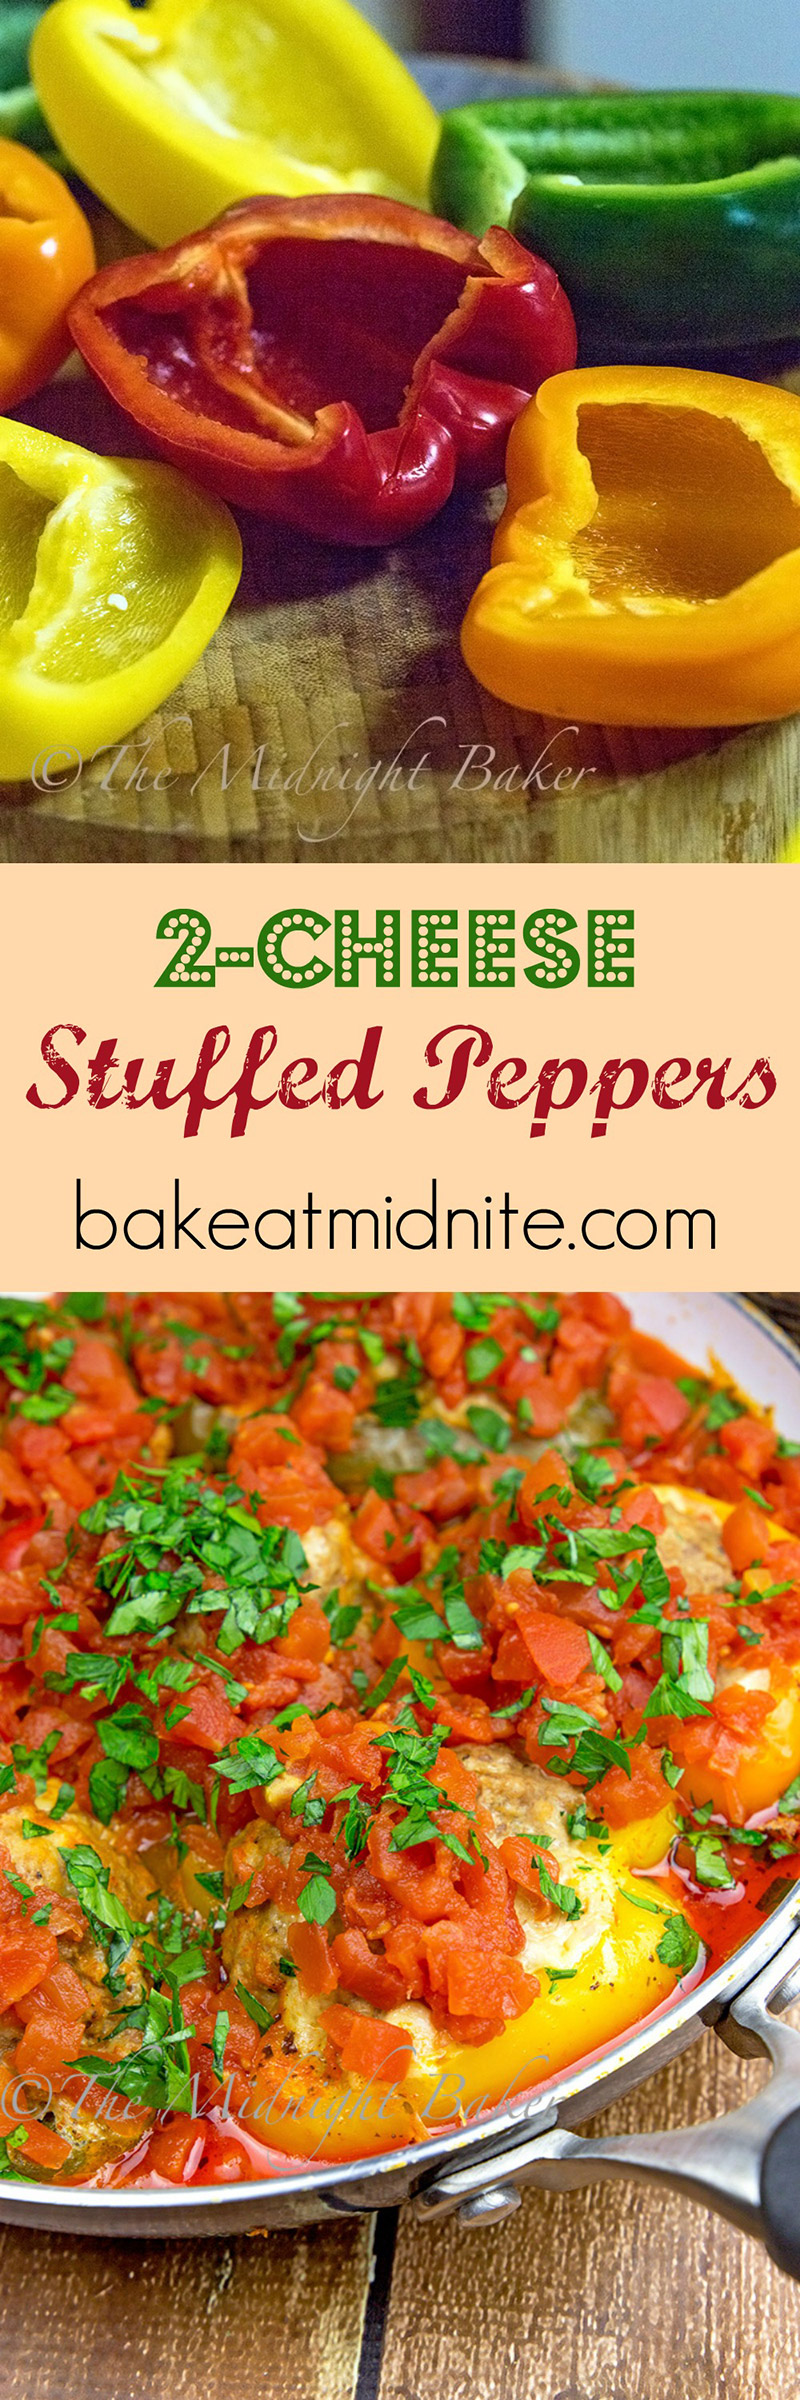 2-Cheese Stuffed Peppers